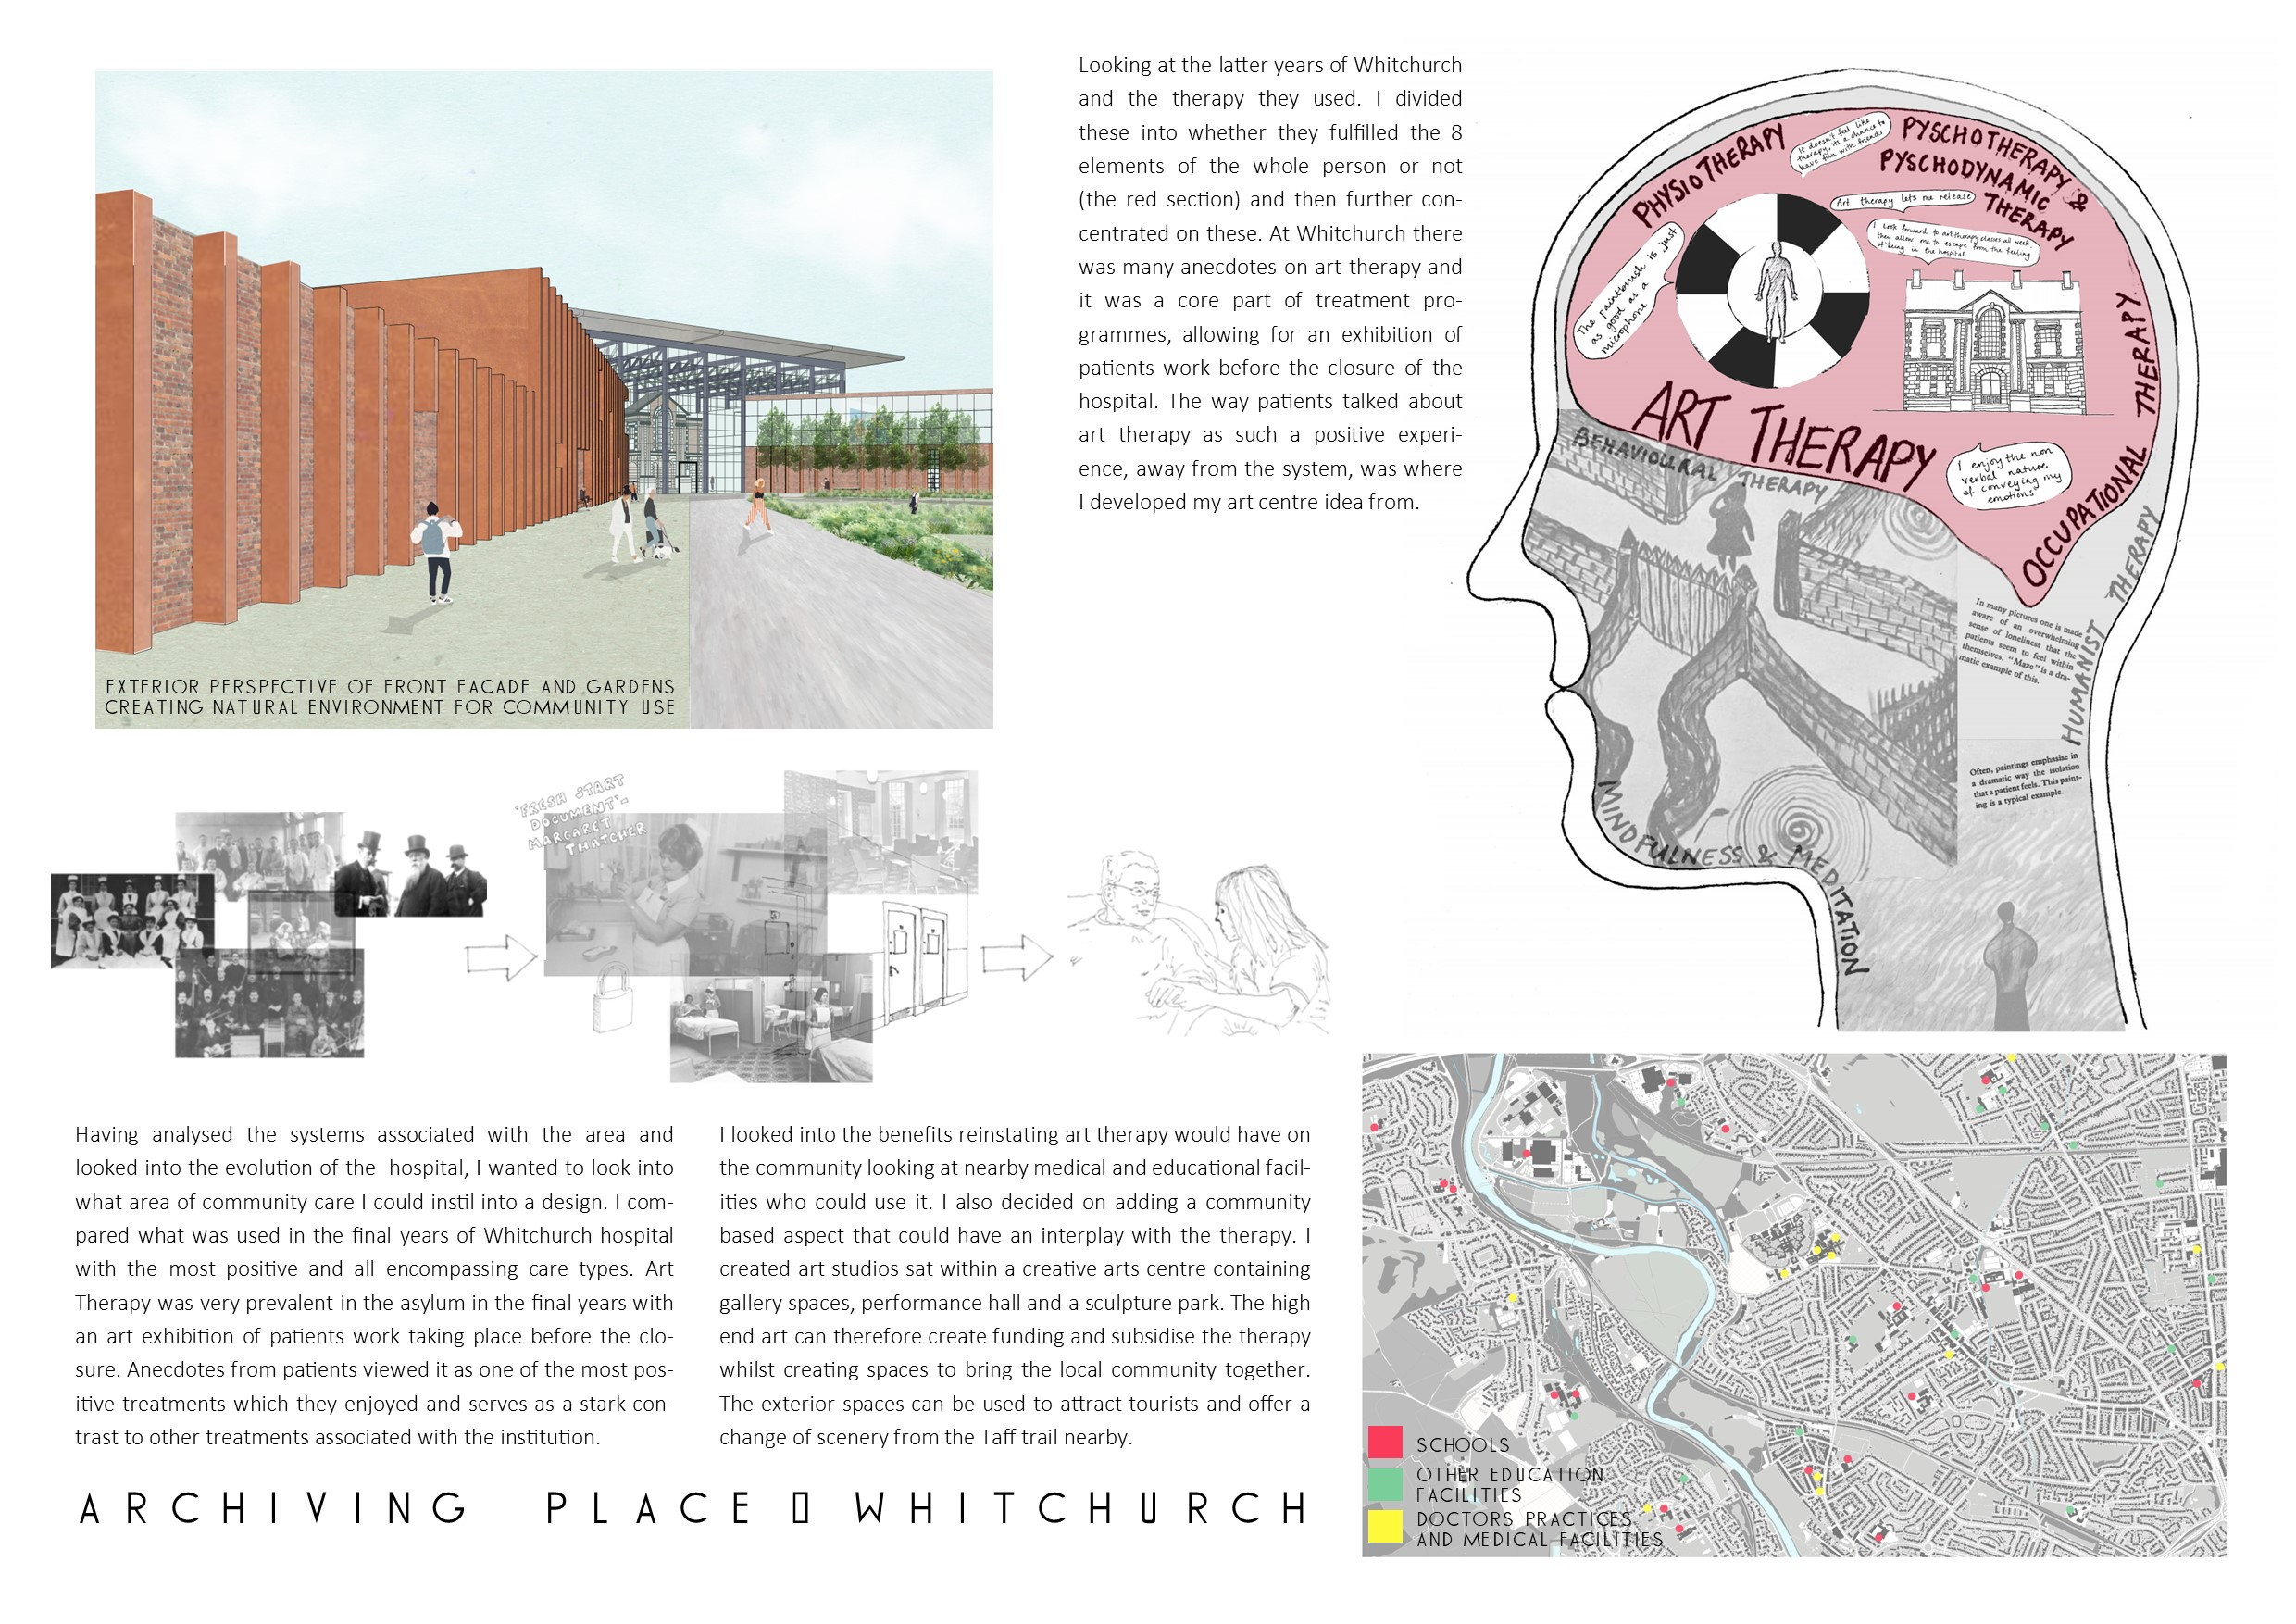 Portfolio Page of explorations into community care and the therapy used previously at Whitchurch Hospital. A drawing of the human head is full of methods of therapy. A site map illustrates the education and health facilities surrounding the site and an exterior perspective shows the front facade and gardens of the new proposal that focuses on art therapy.